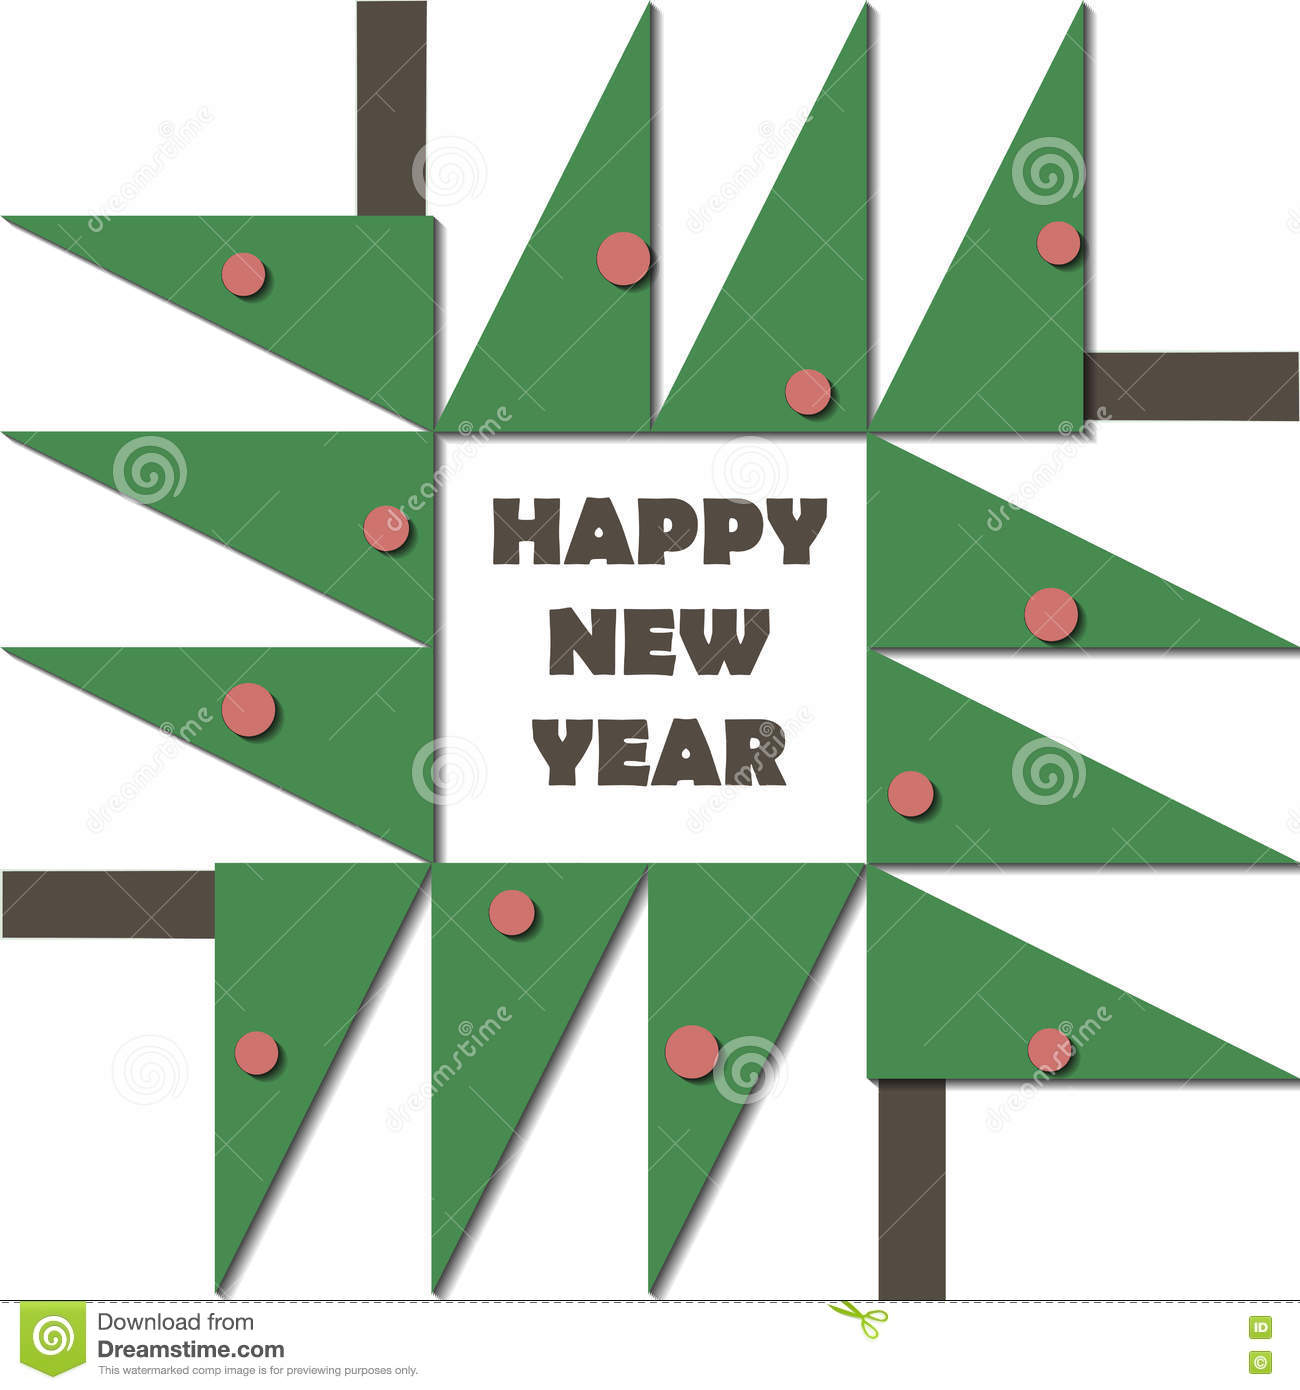 happy new year greeting card paper cut collage applique cutout child christmas tree with